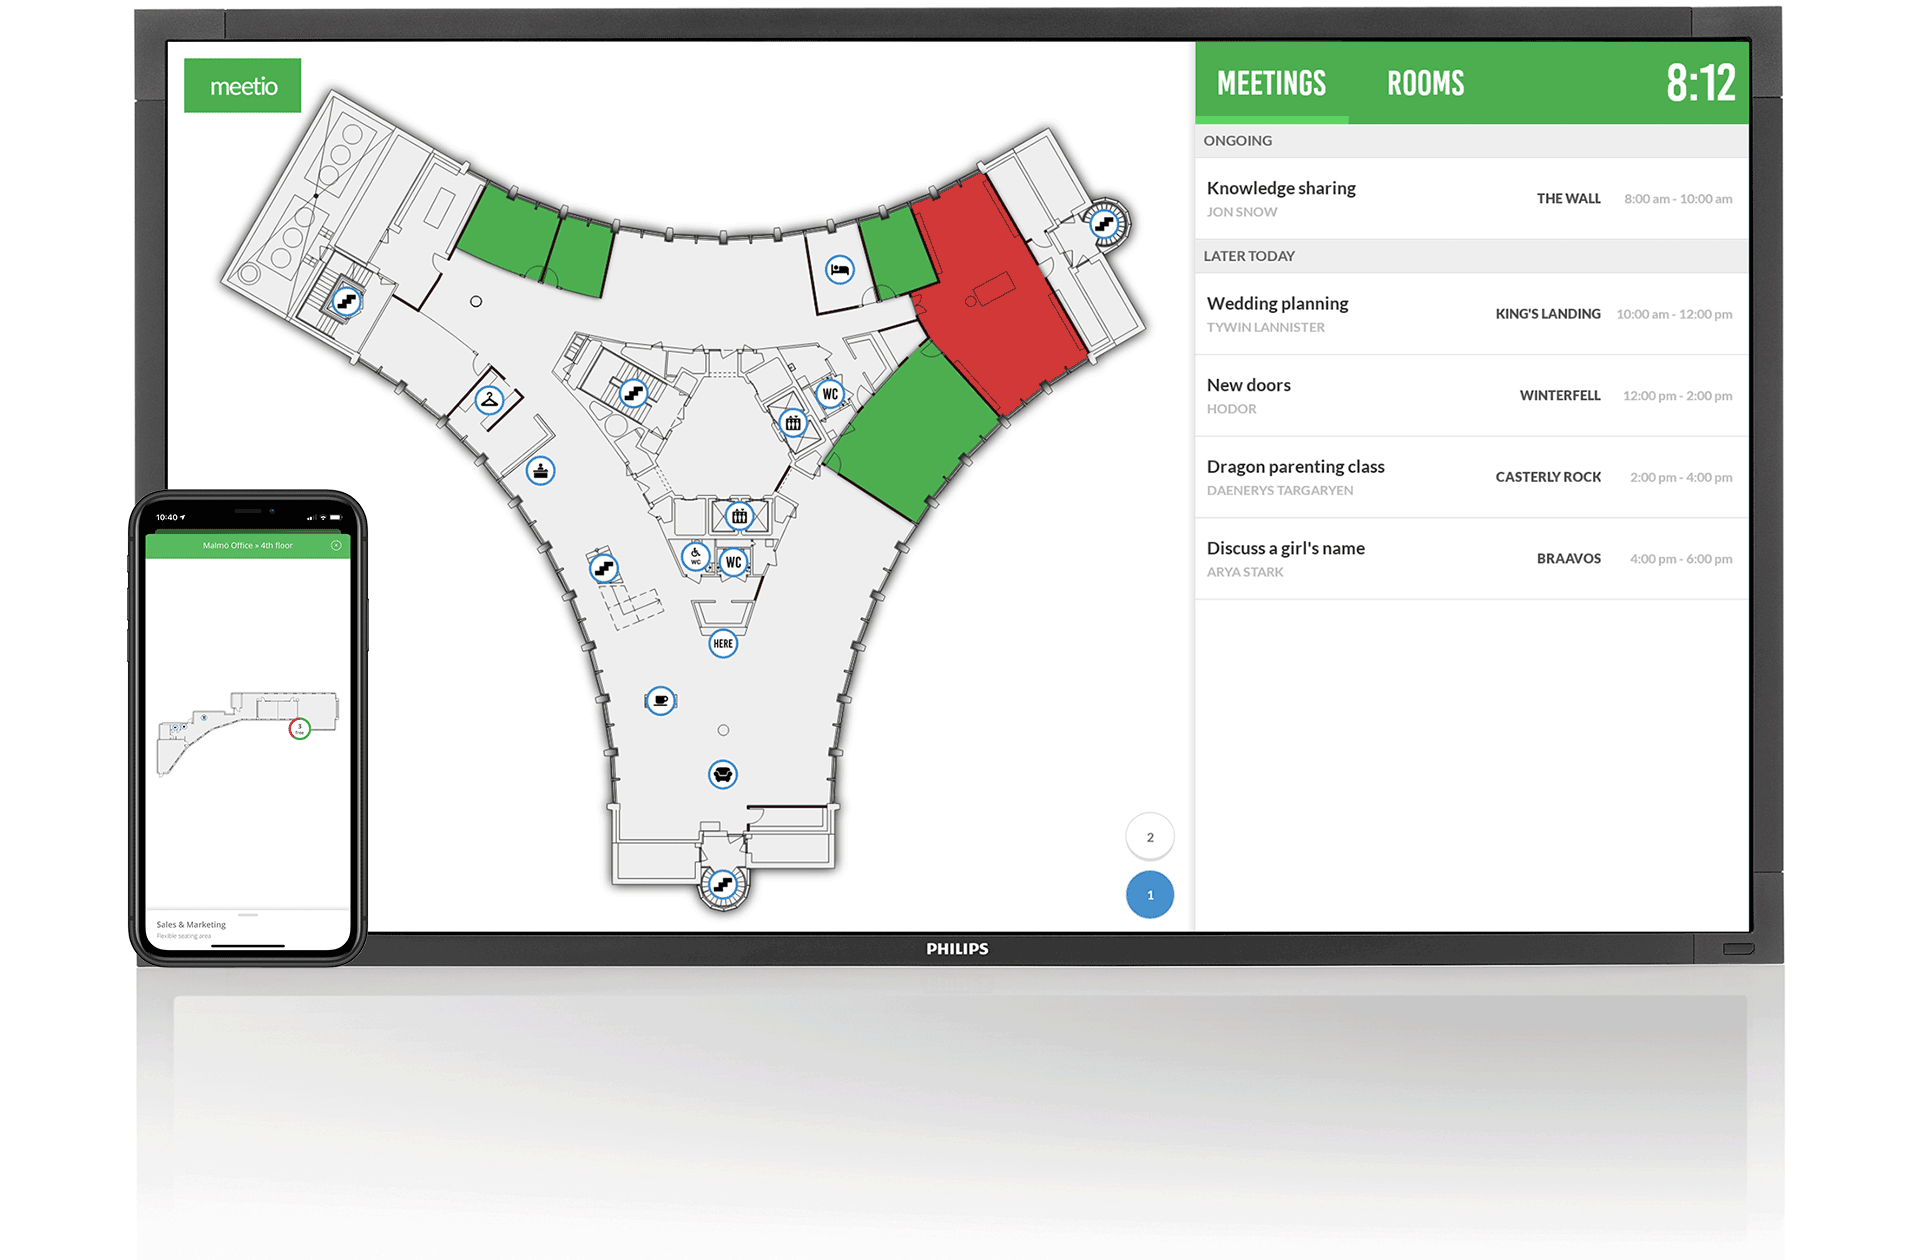 Meetio View with floor plan maps